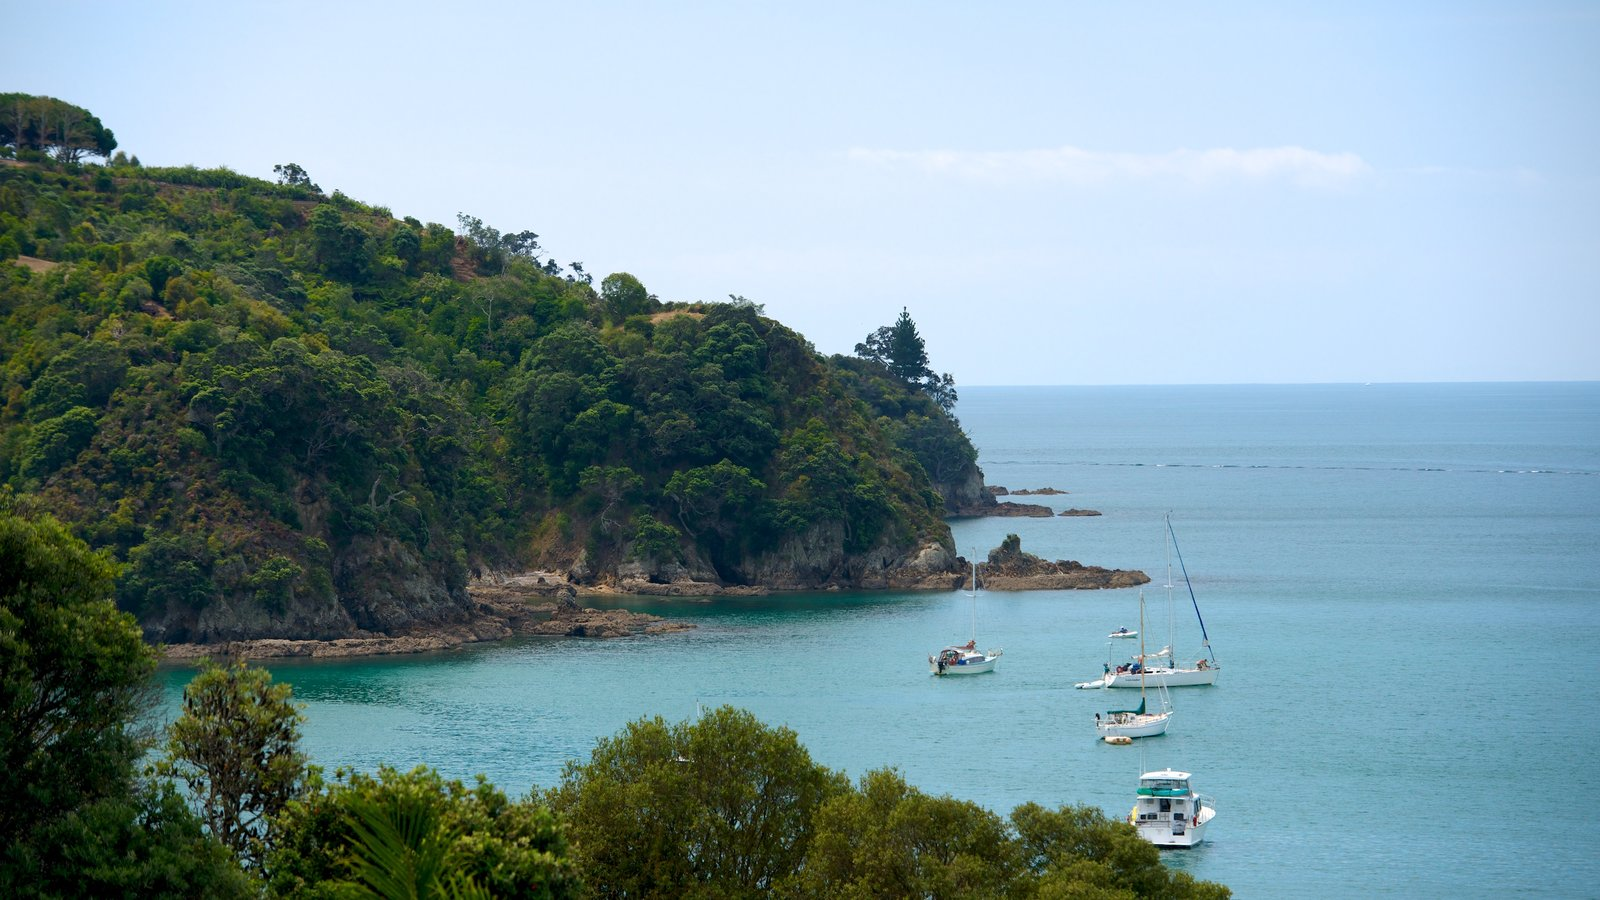 Waiheke Island featuring island images, forest scenes and general coastal views